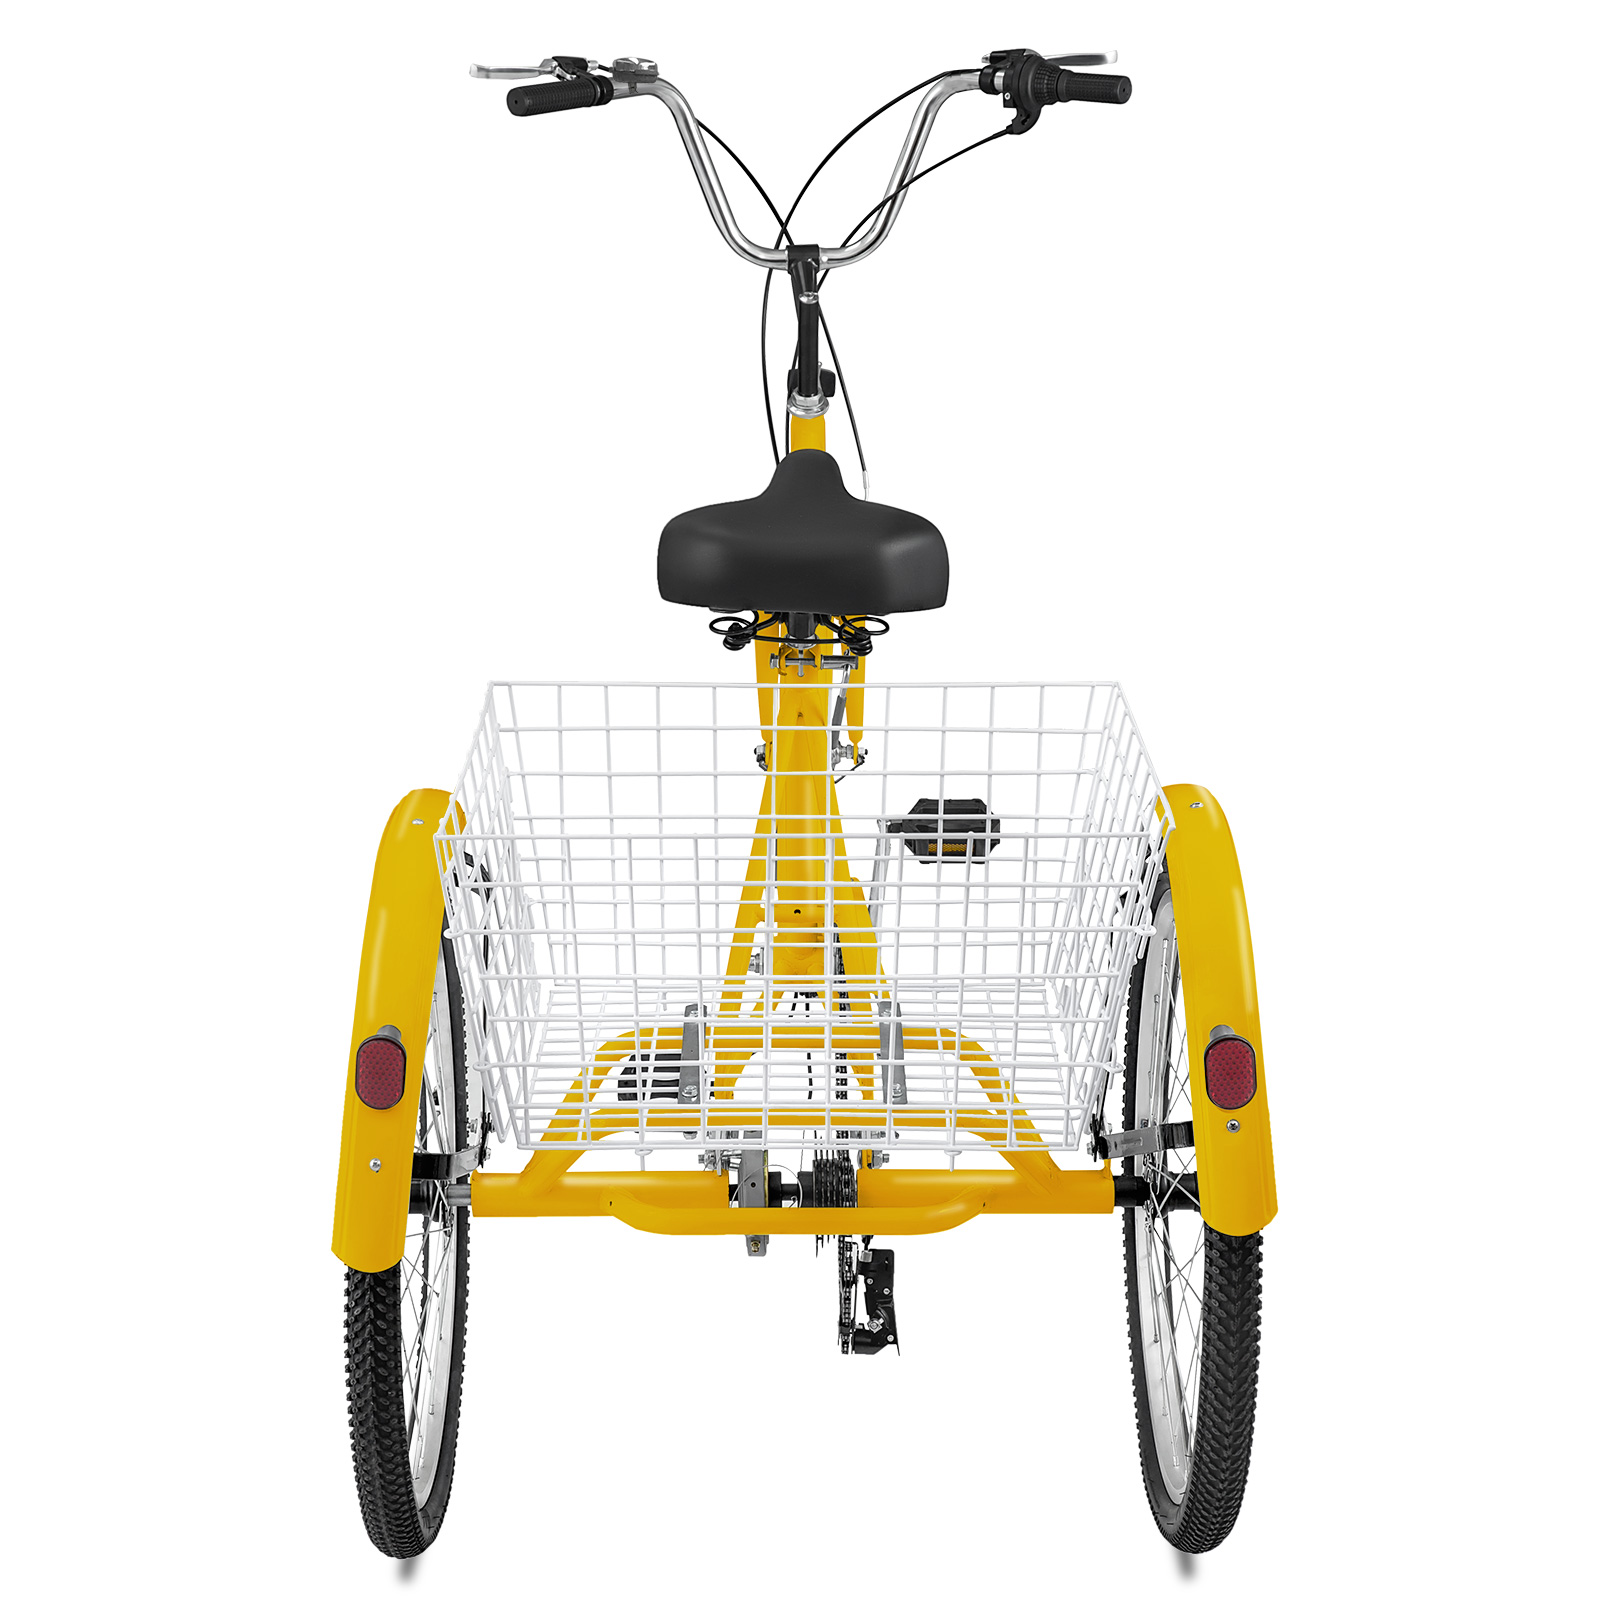 20-24-26-034-Adult-Tricycle-1-7-Speed-3-Wheel-Large-Basket-For-Shopping-Optional thumbnail 228